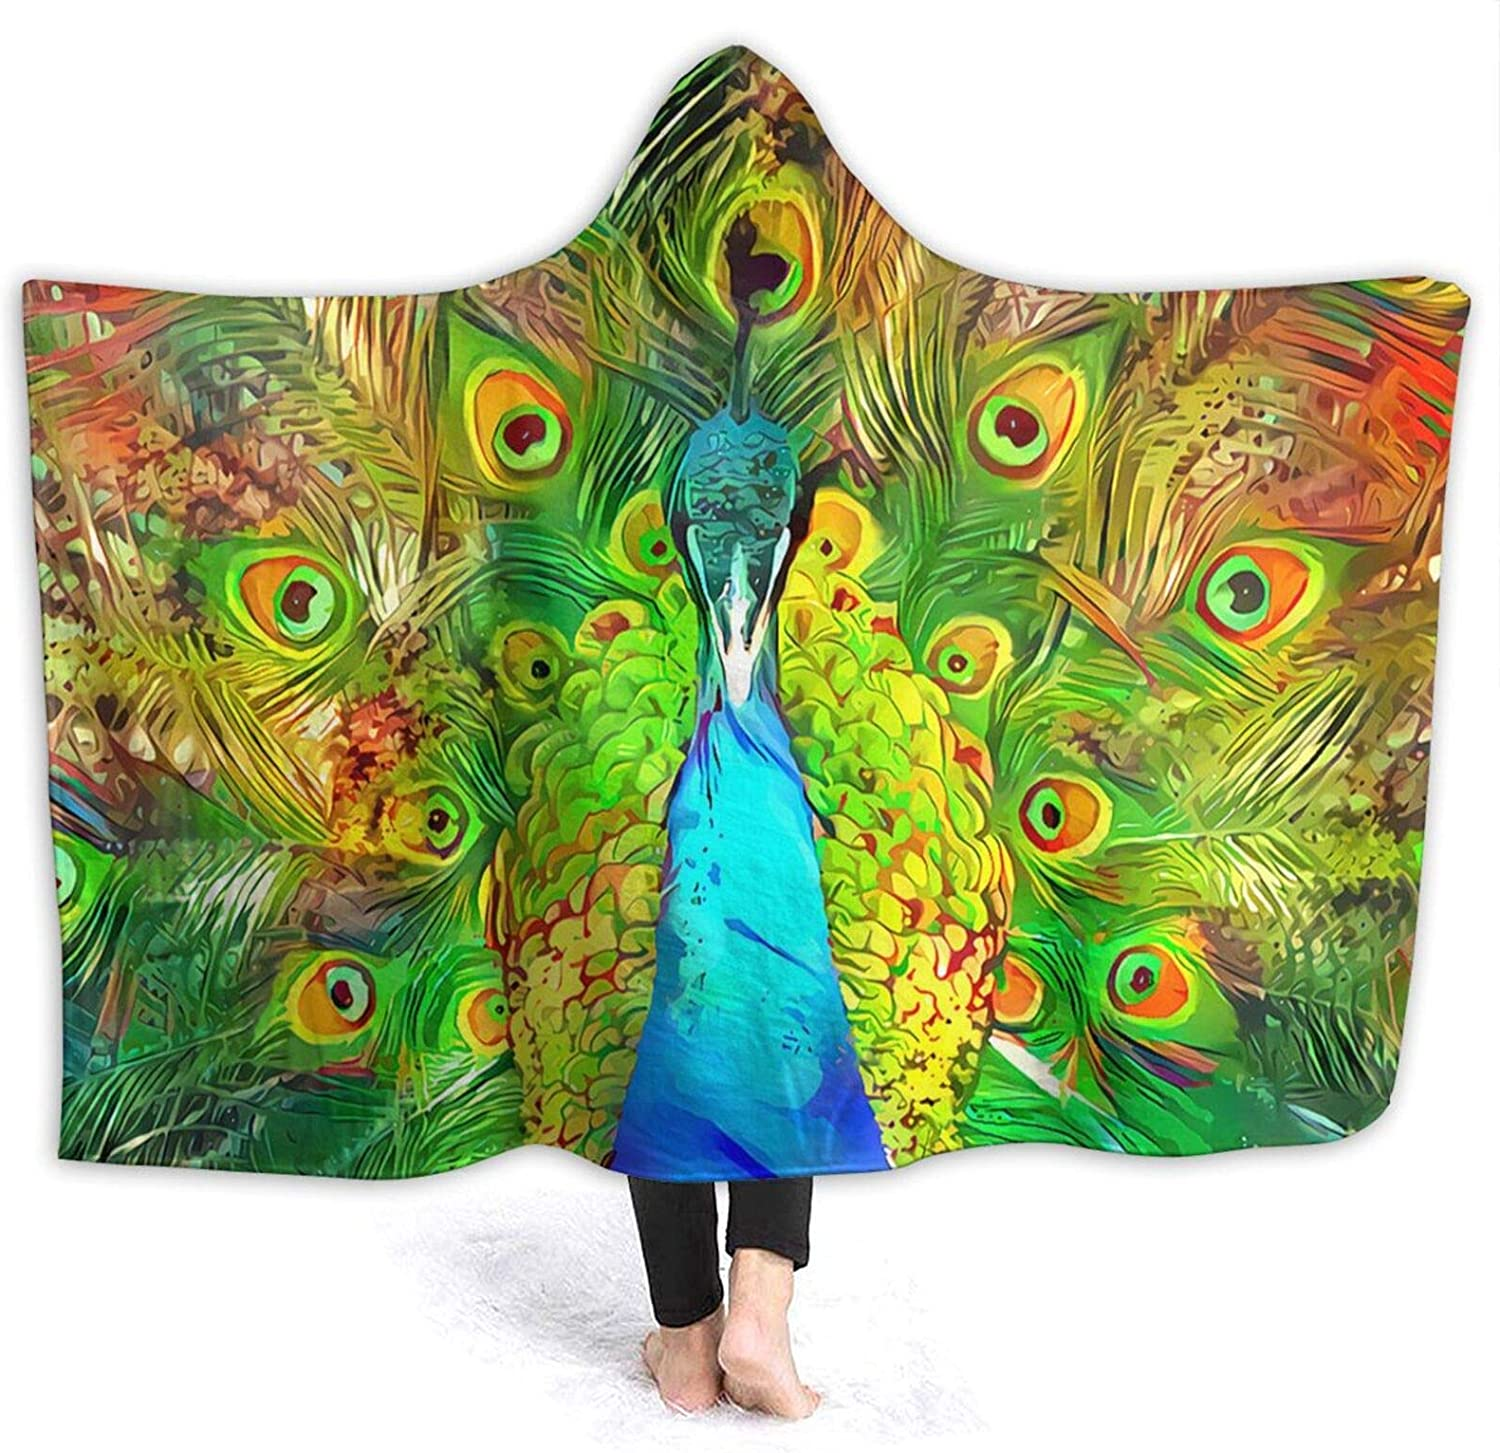 NYIVBE Abstract Peacock Feathers Outlet ☆ Free Shipping Hooded Courier shipping free shipping Soft Super Blanket Cozy